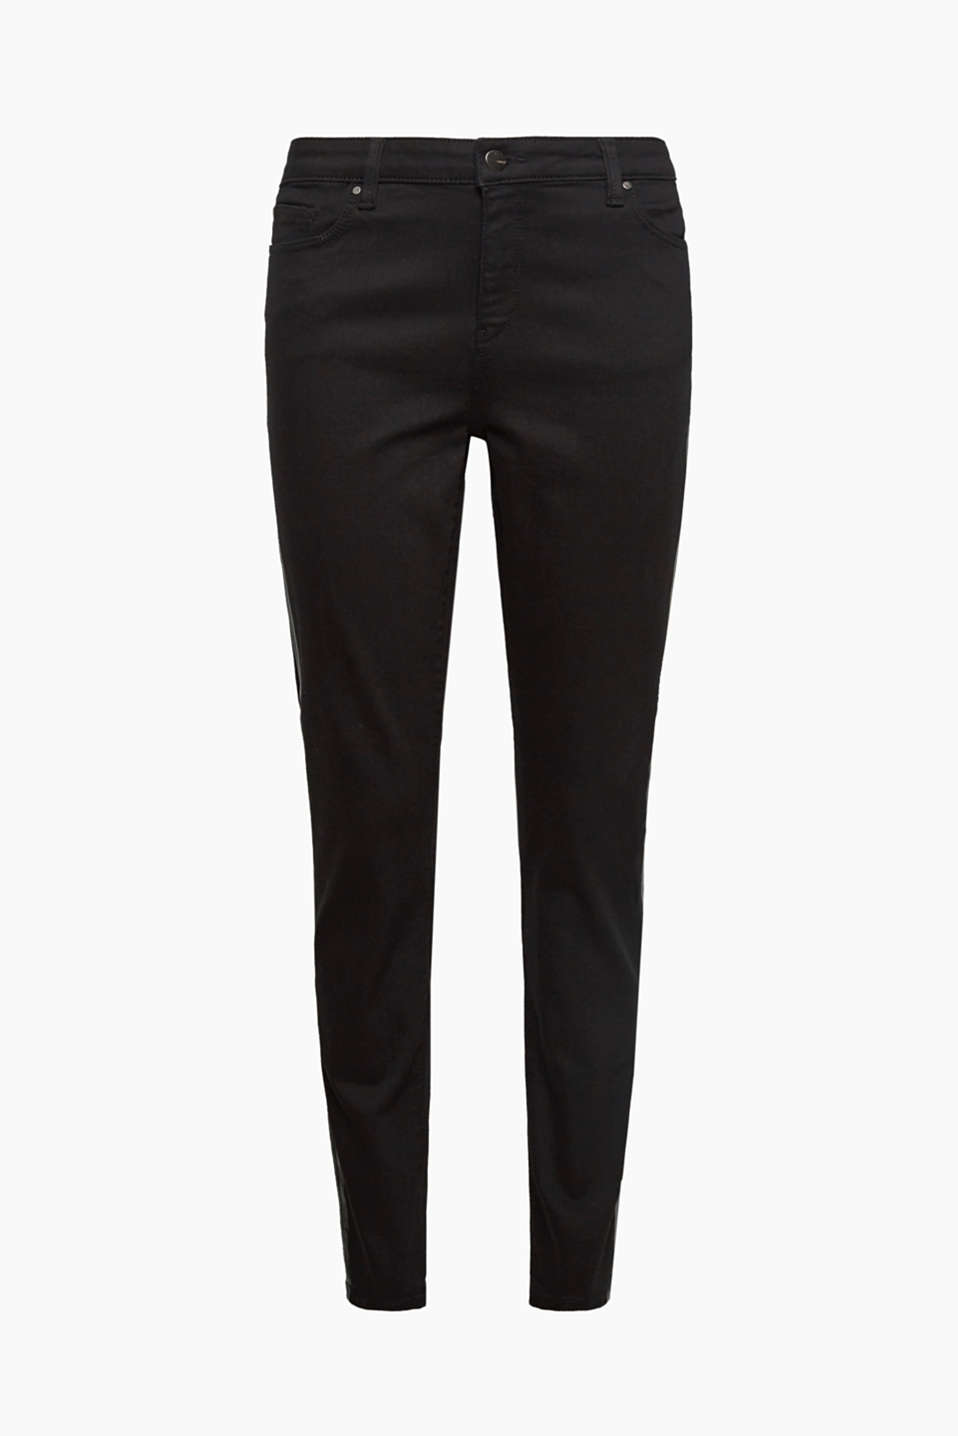 The shiny tuxedo stripes on the outside of the leg accentuate the sexy, skin-tight silhouette of these black jeans!